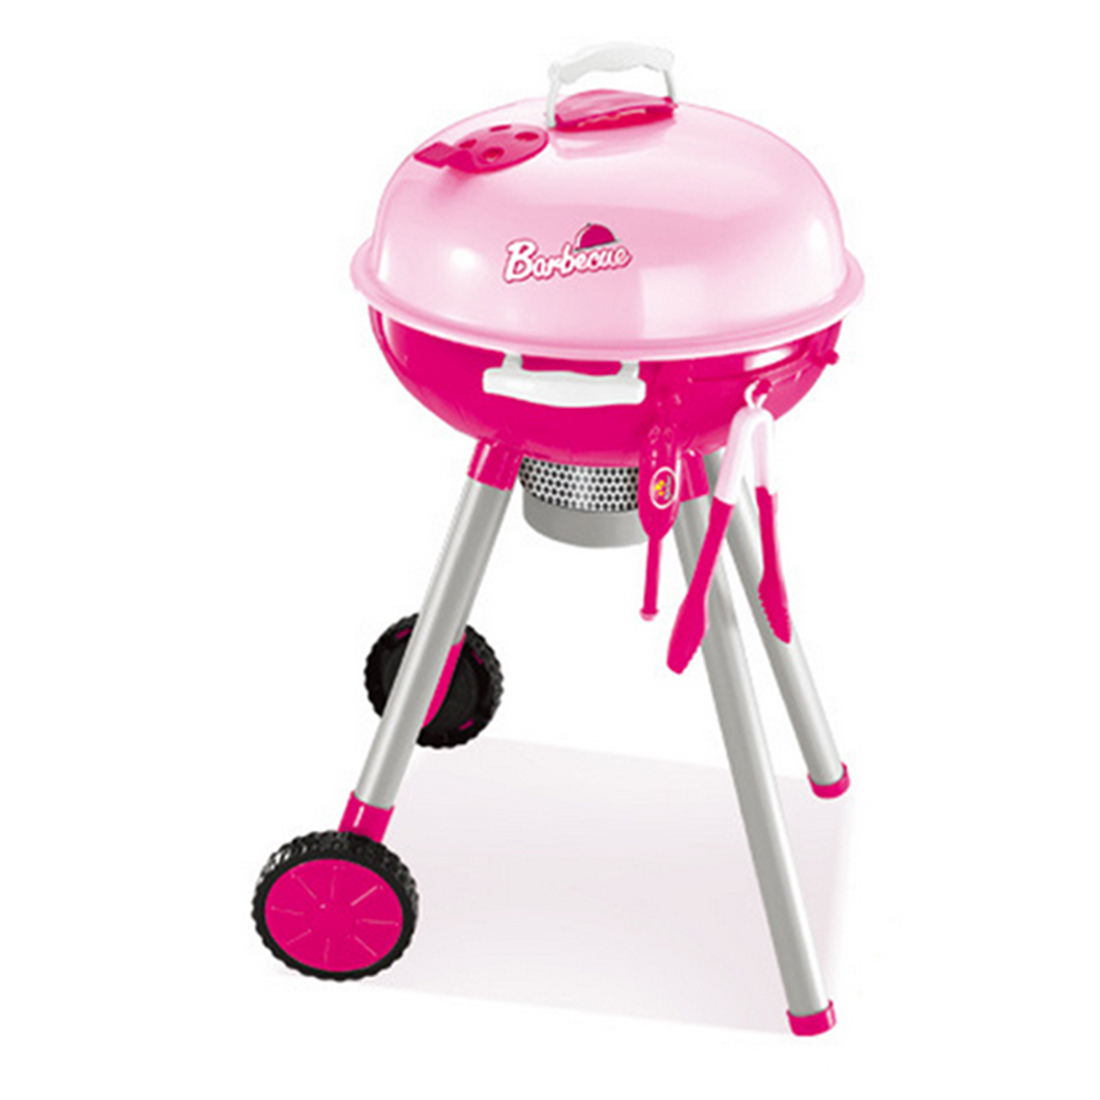 все цены на New Hot Children Cooking Play BBQ Stroller Toy Set Kid'S Kitchen Pretend & Play Toys Baby Kids Home Educational Toy - Pink